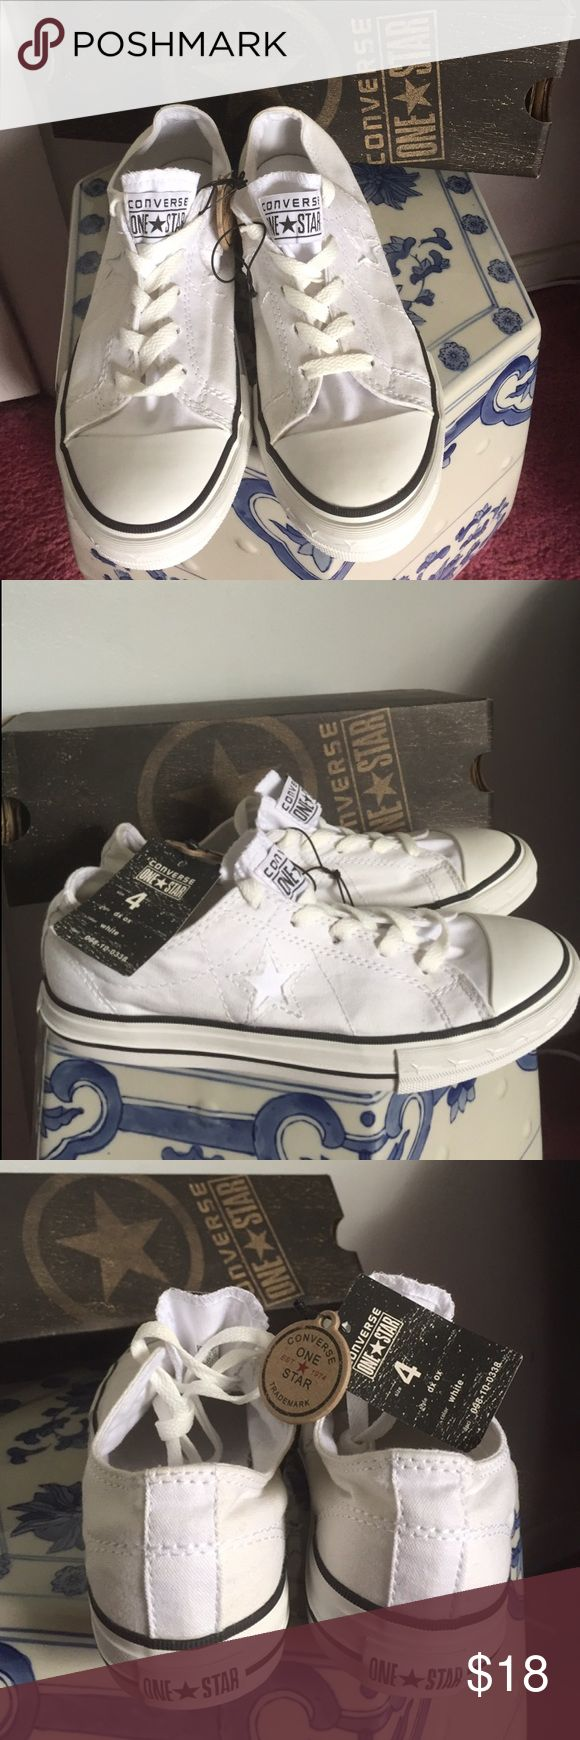 New Authentic Converse kids sneakers Canvas material with box Converse Shoes Sneakers